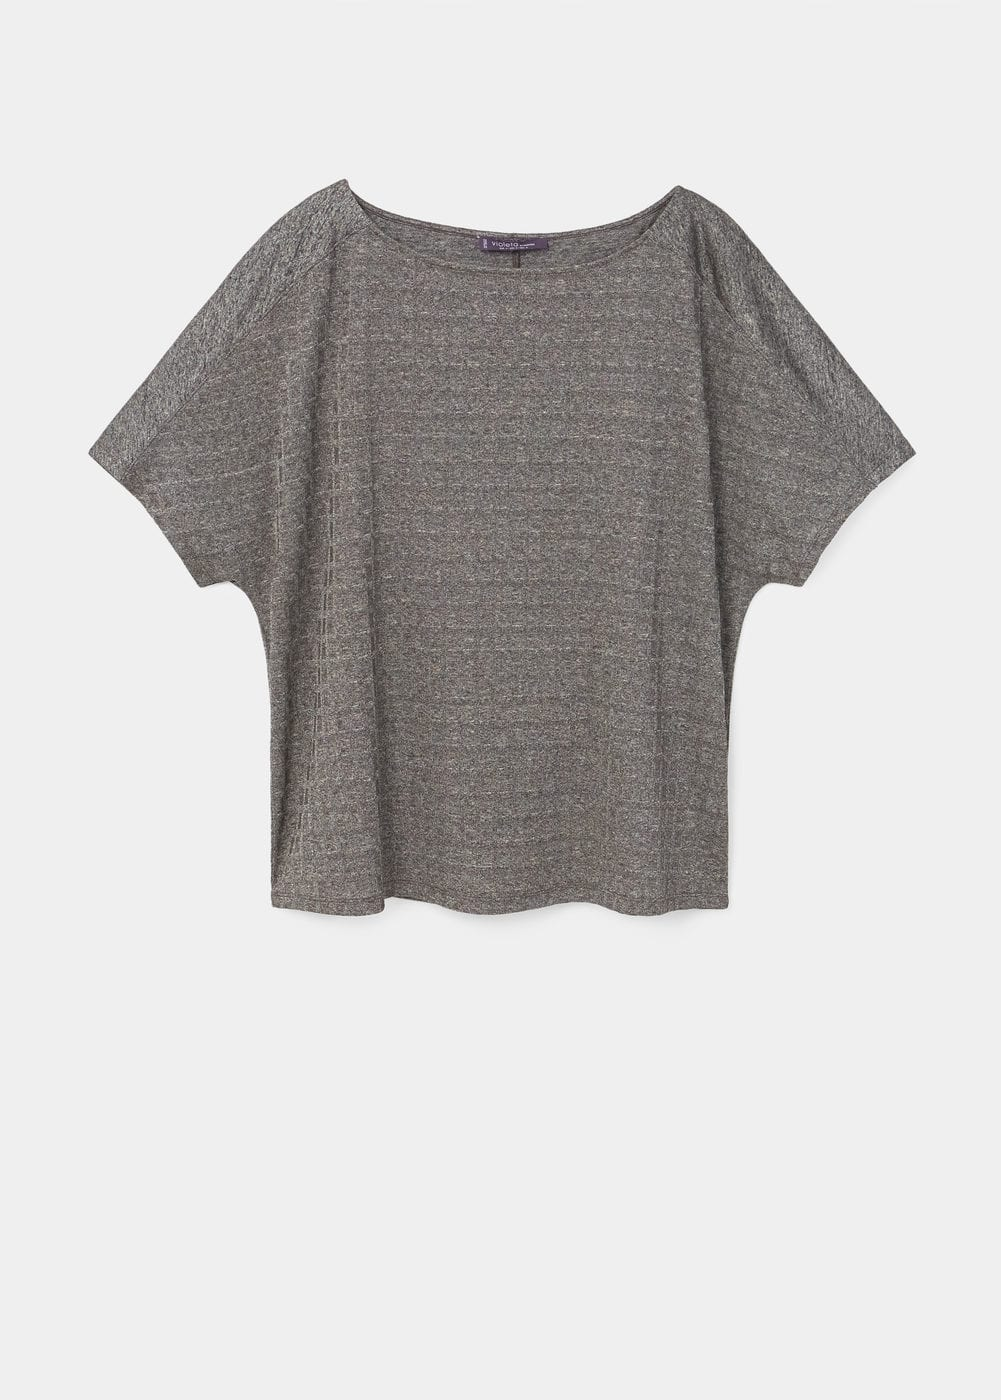 Textured flowy t-shirt | VIOLETA BY MANGO